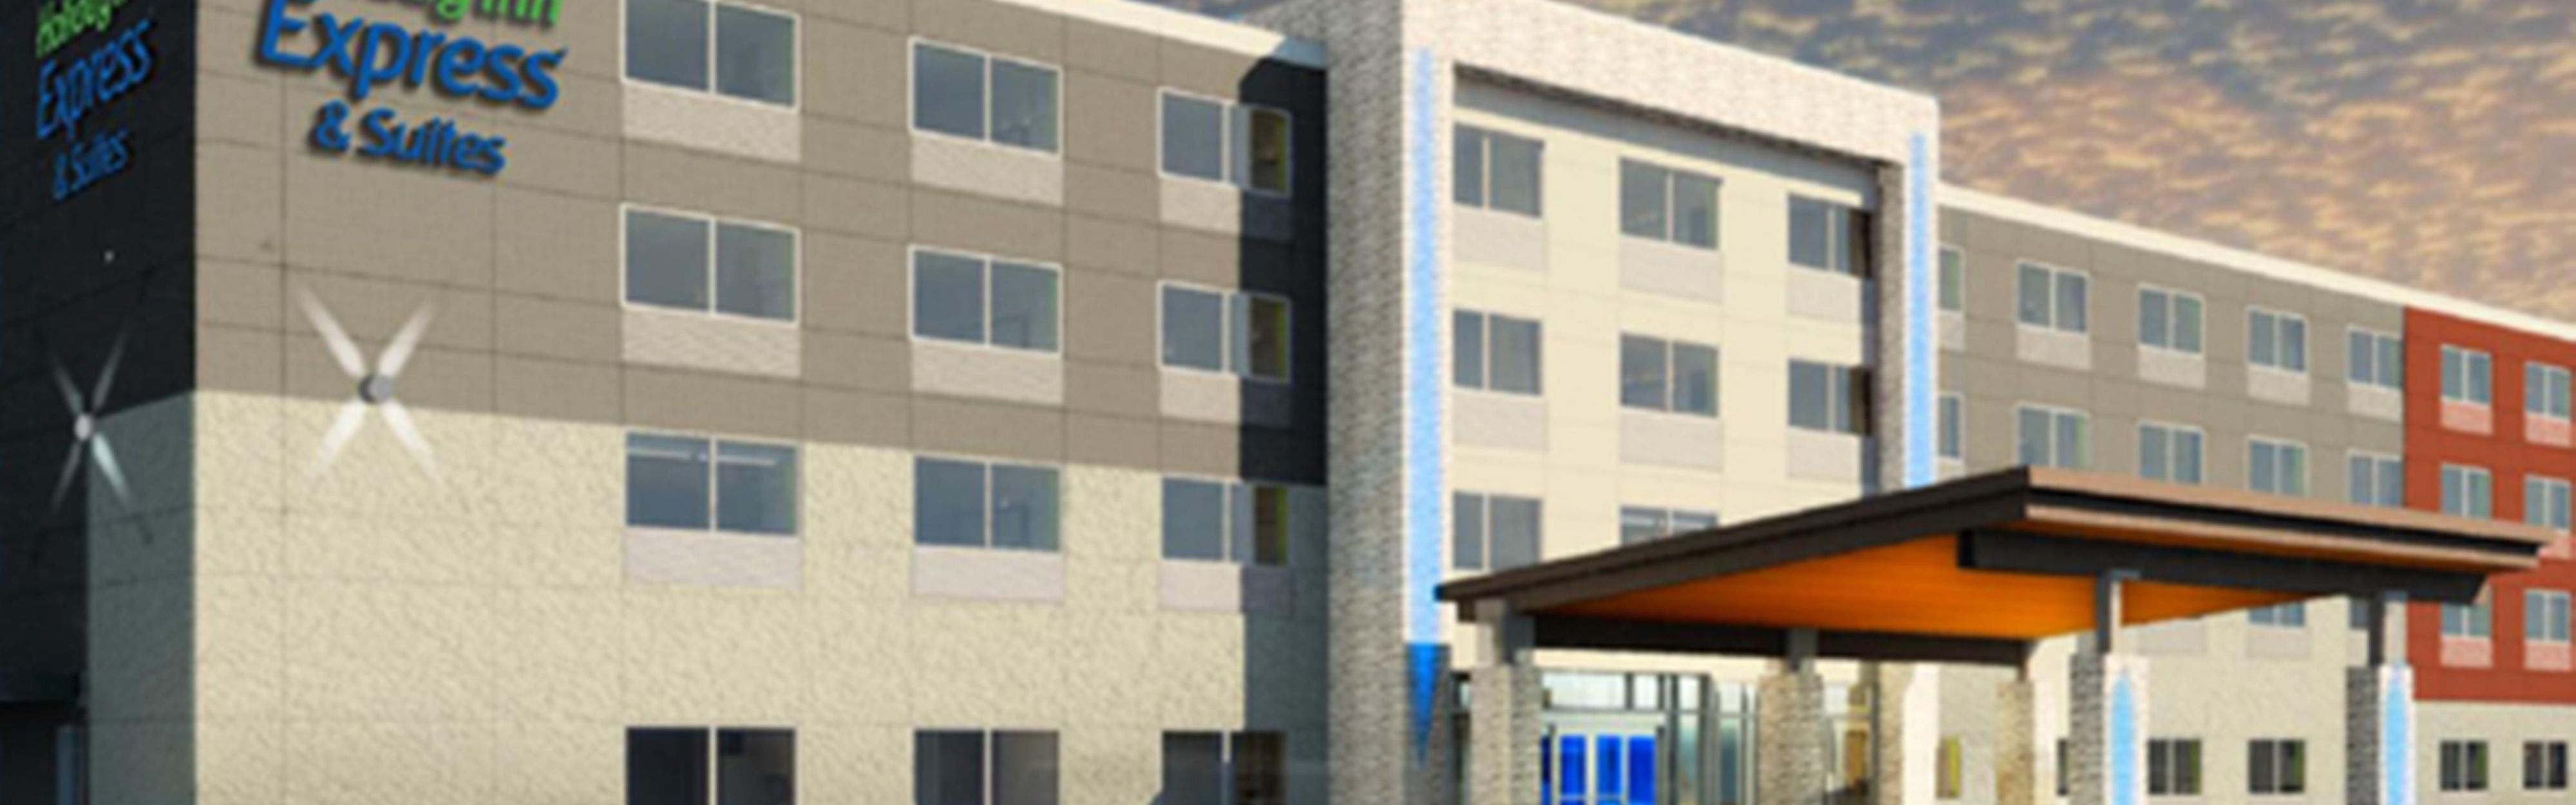 Holiday Inn Express & Suites Houston - Hobby Airport Area image 0